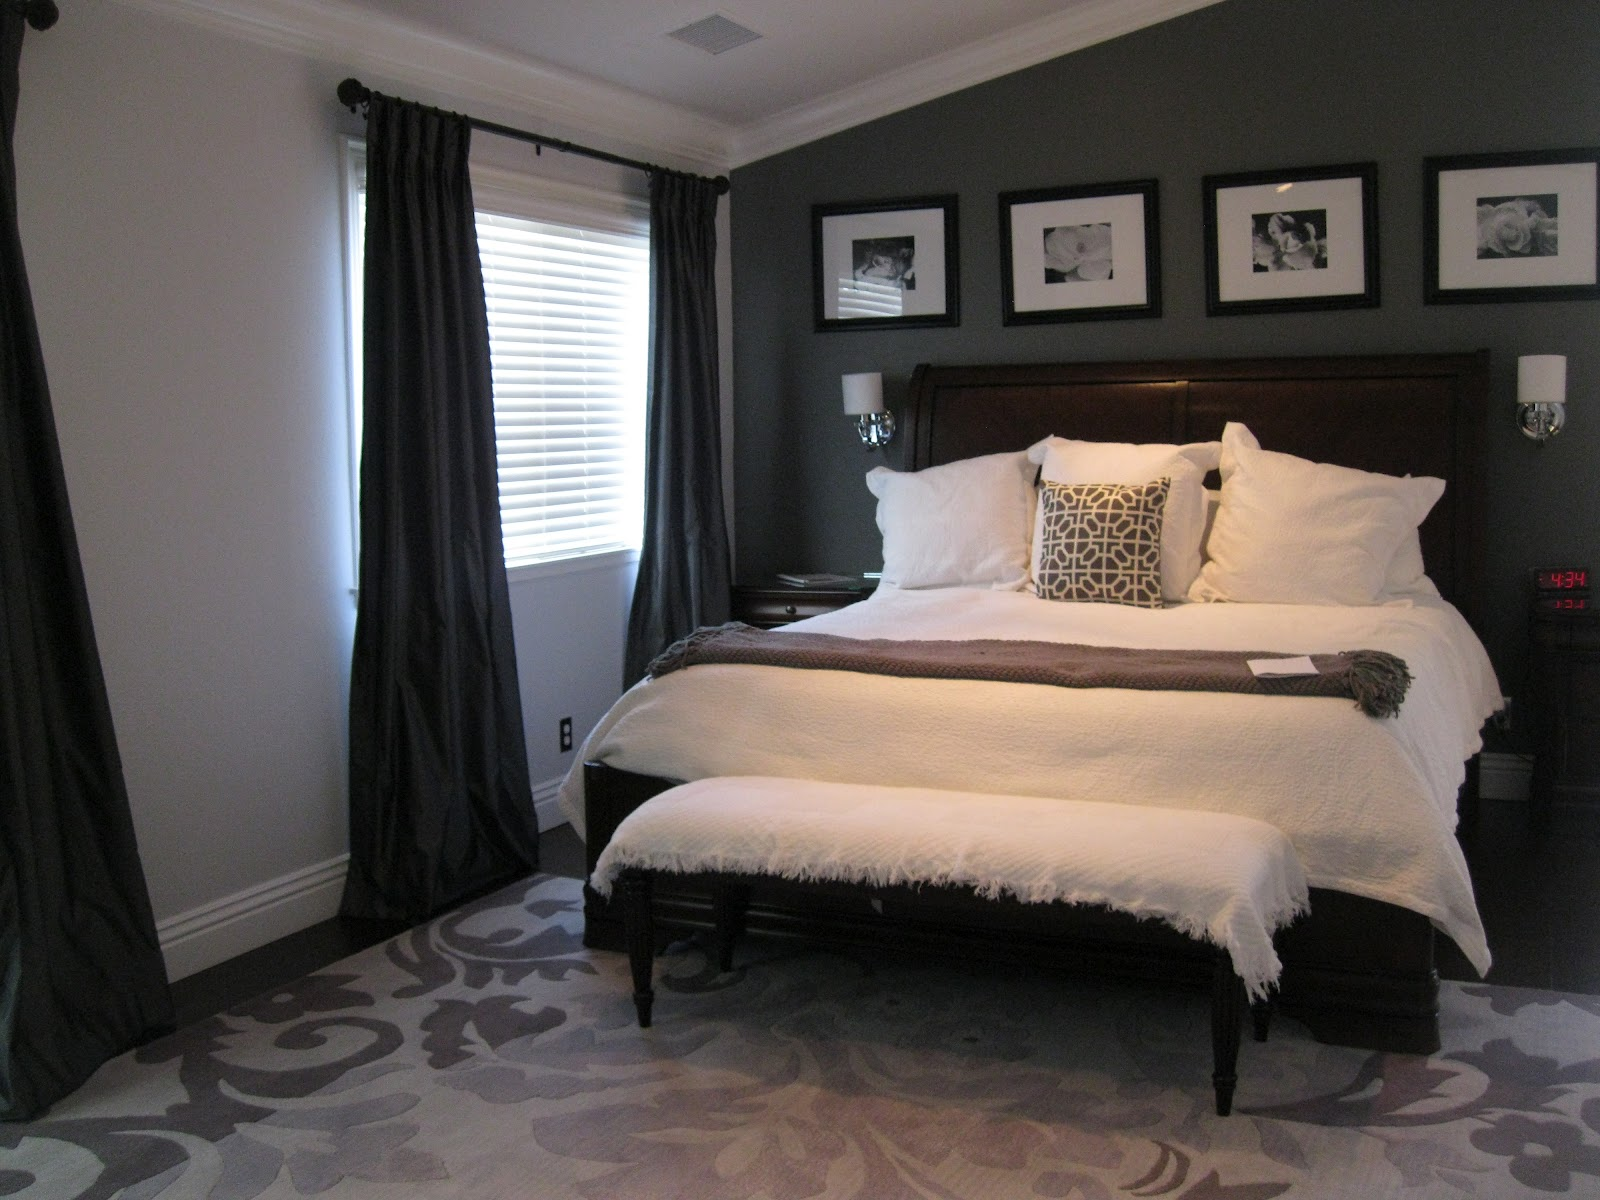 C b i d home decor and design charcoal gray master suite for Bedroom suite decorating ideas